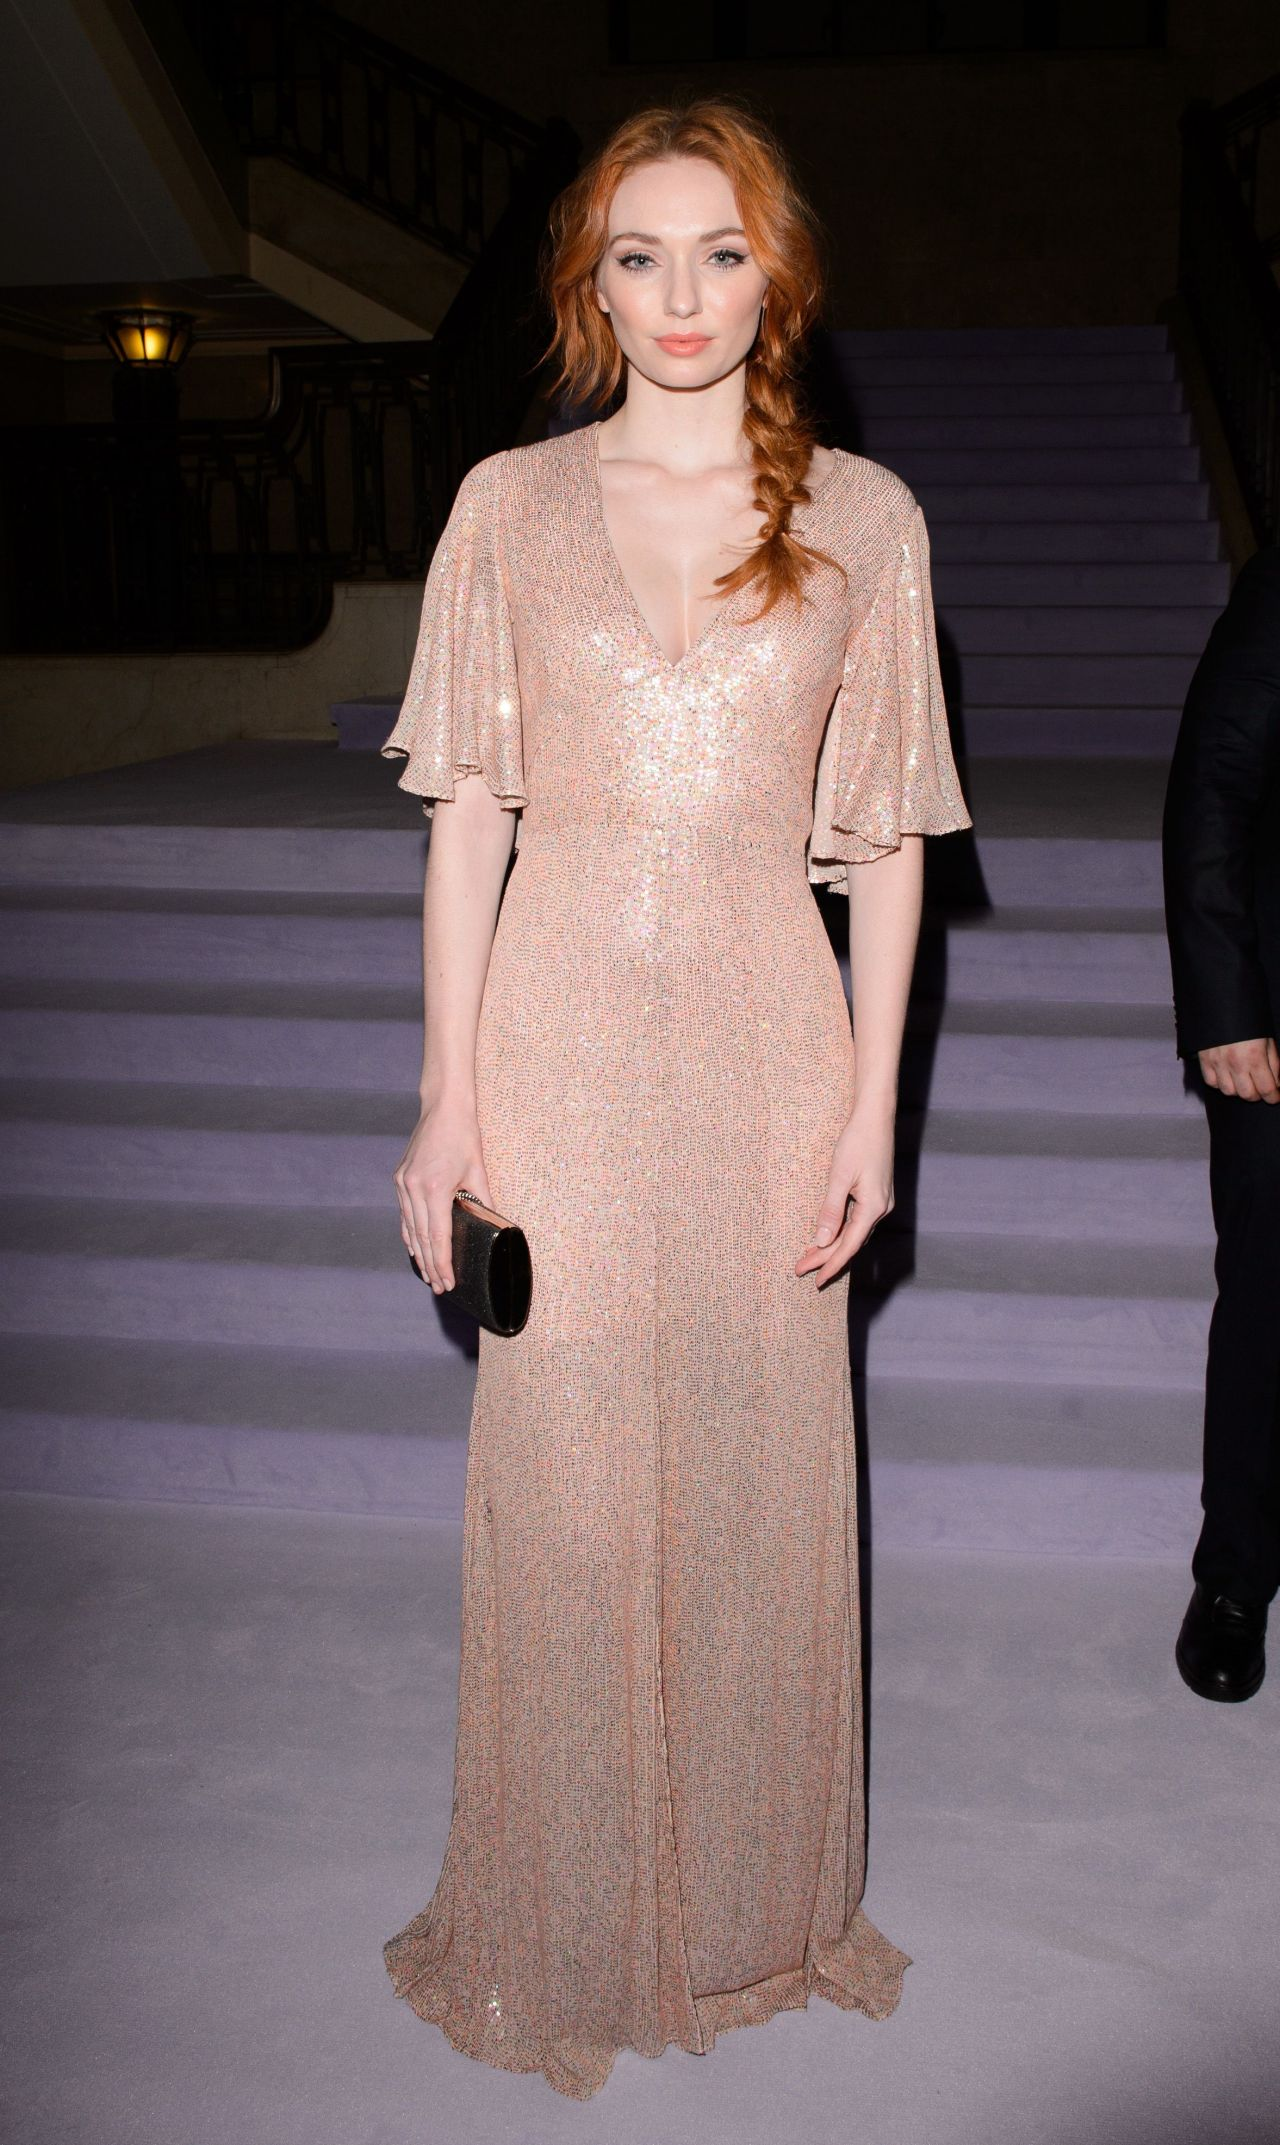 http://celebmafia.com/wp-content/uploads/2017/02/eleanor-tomlinson-temperley-fashion-show-in-london-2-19-2017-2.jpg